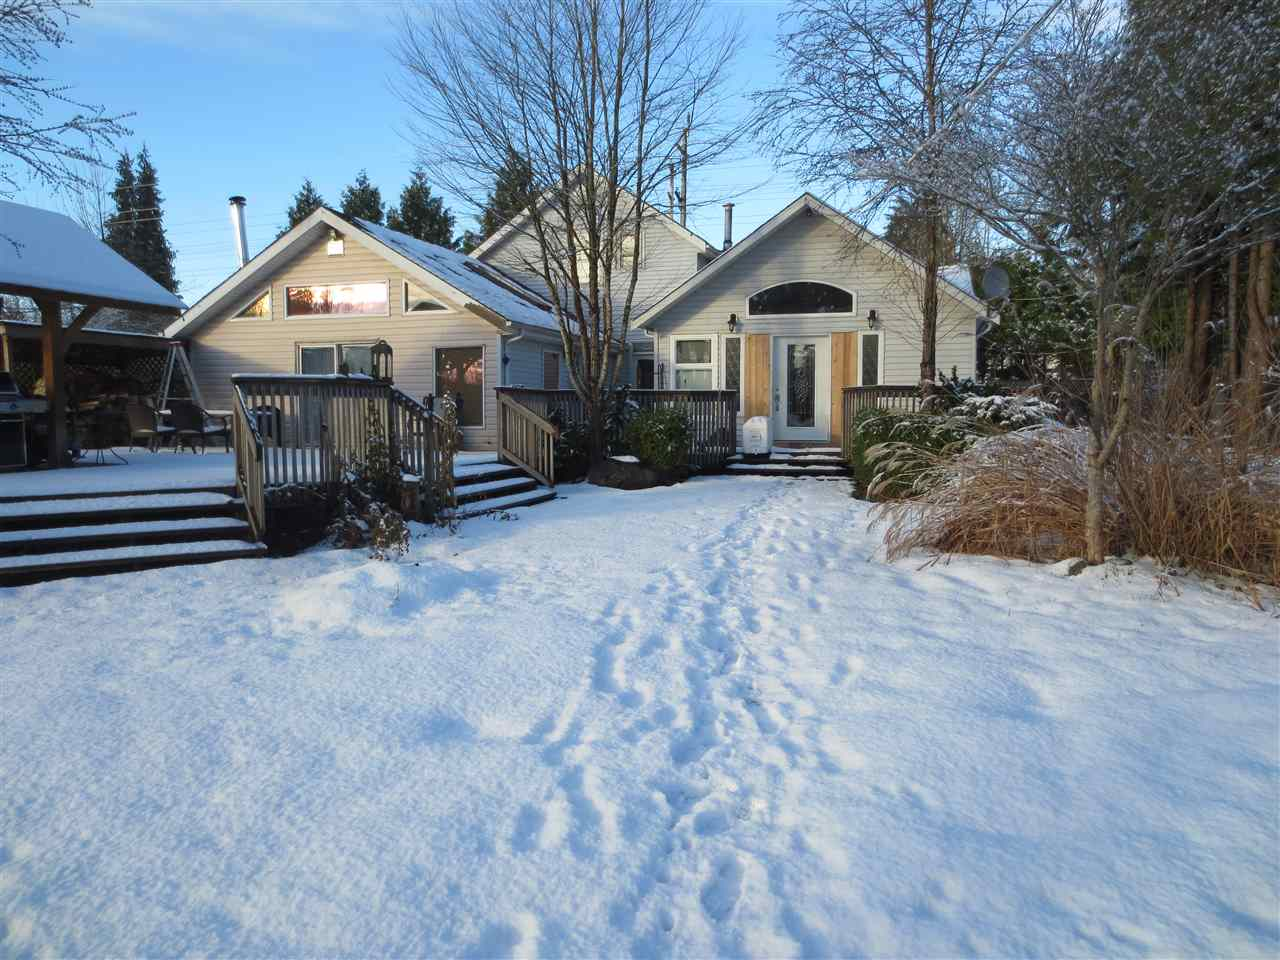 25038 DEWDNEY TRUNK ROAD, Maple Ridge